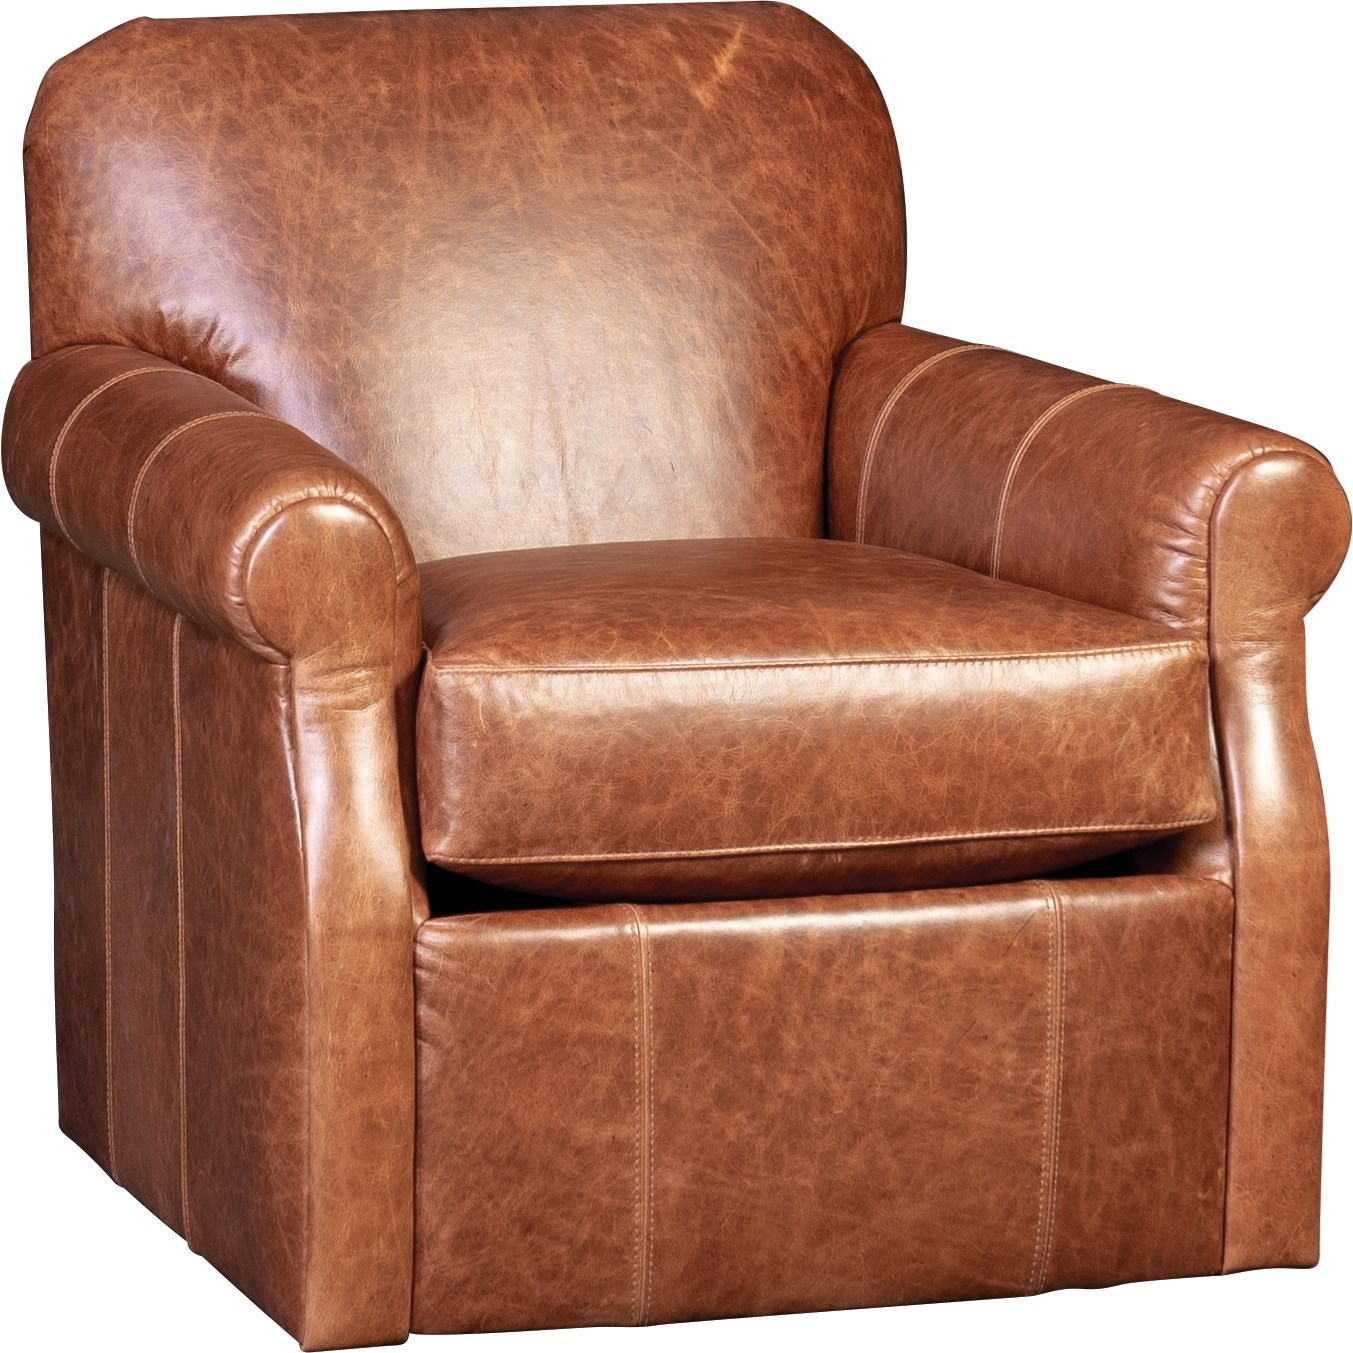 1313 Swivel Chair by Mayo at Wilson's Furniture